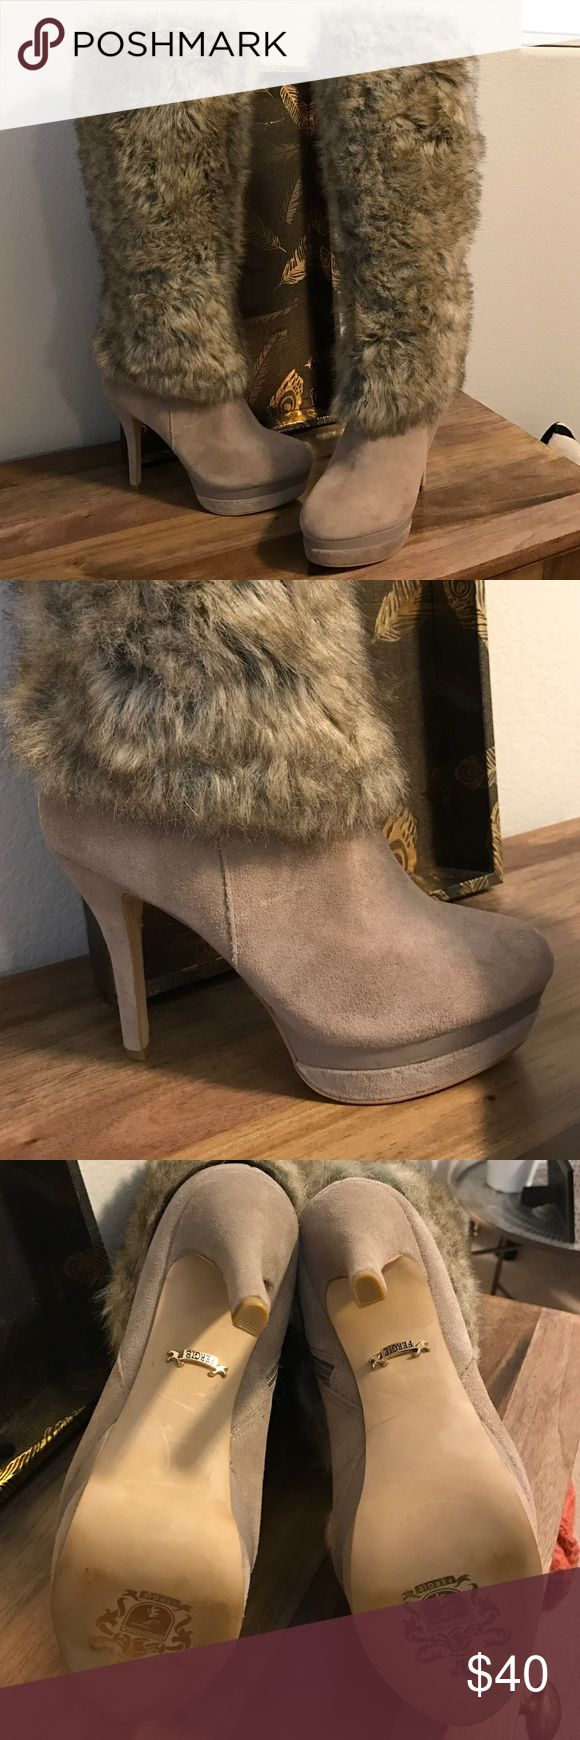 FERGIE tan fur boots Worn only once. These are great boots !! Nice neutral color with faux fur and suede 1 inch platform with 4 1/2 inch heel. Full zipper top to bottom. In excellent condition. An absolute must for your winter wardrobe. Make your best offer !! 😊 Fergie Shoes Heeled Boots